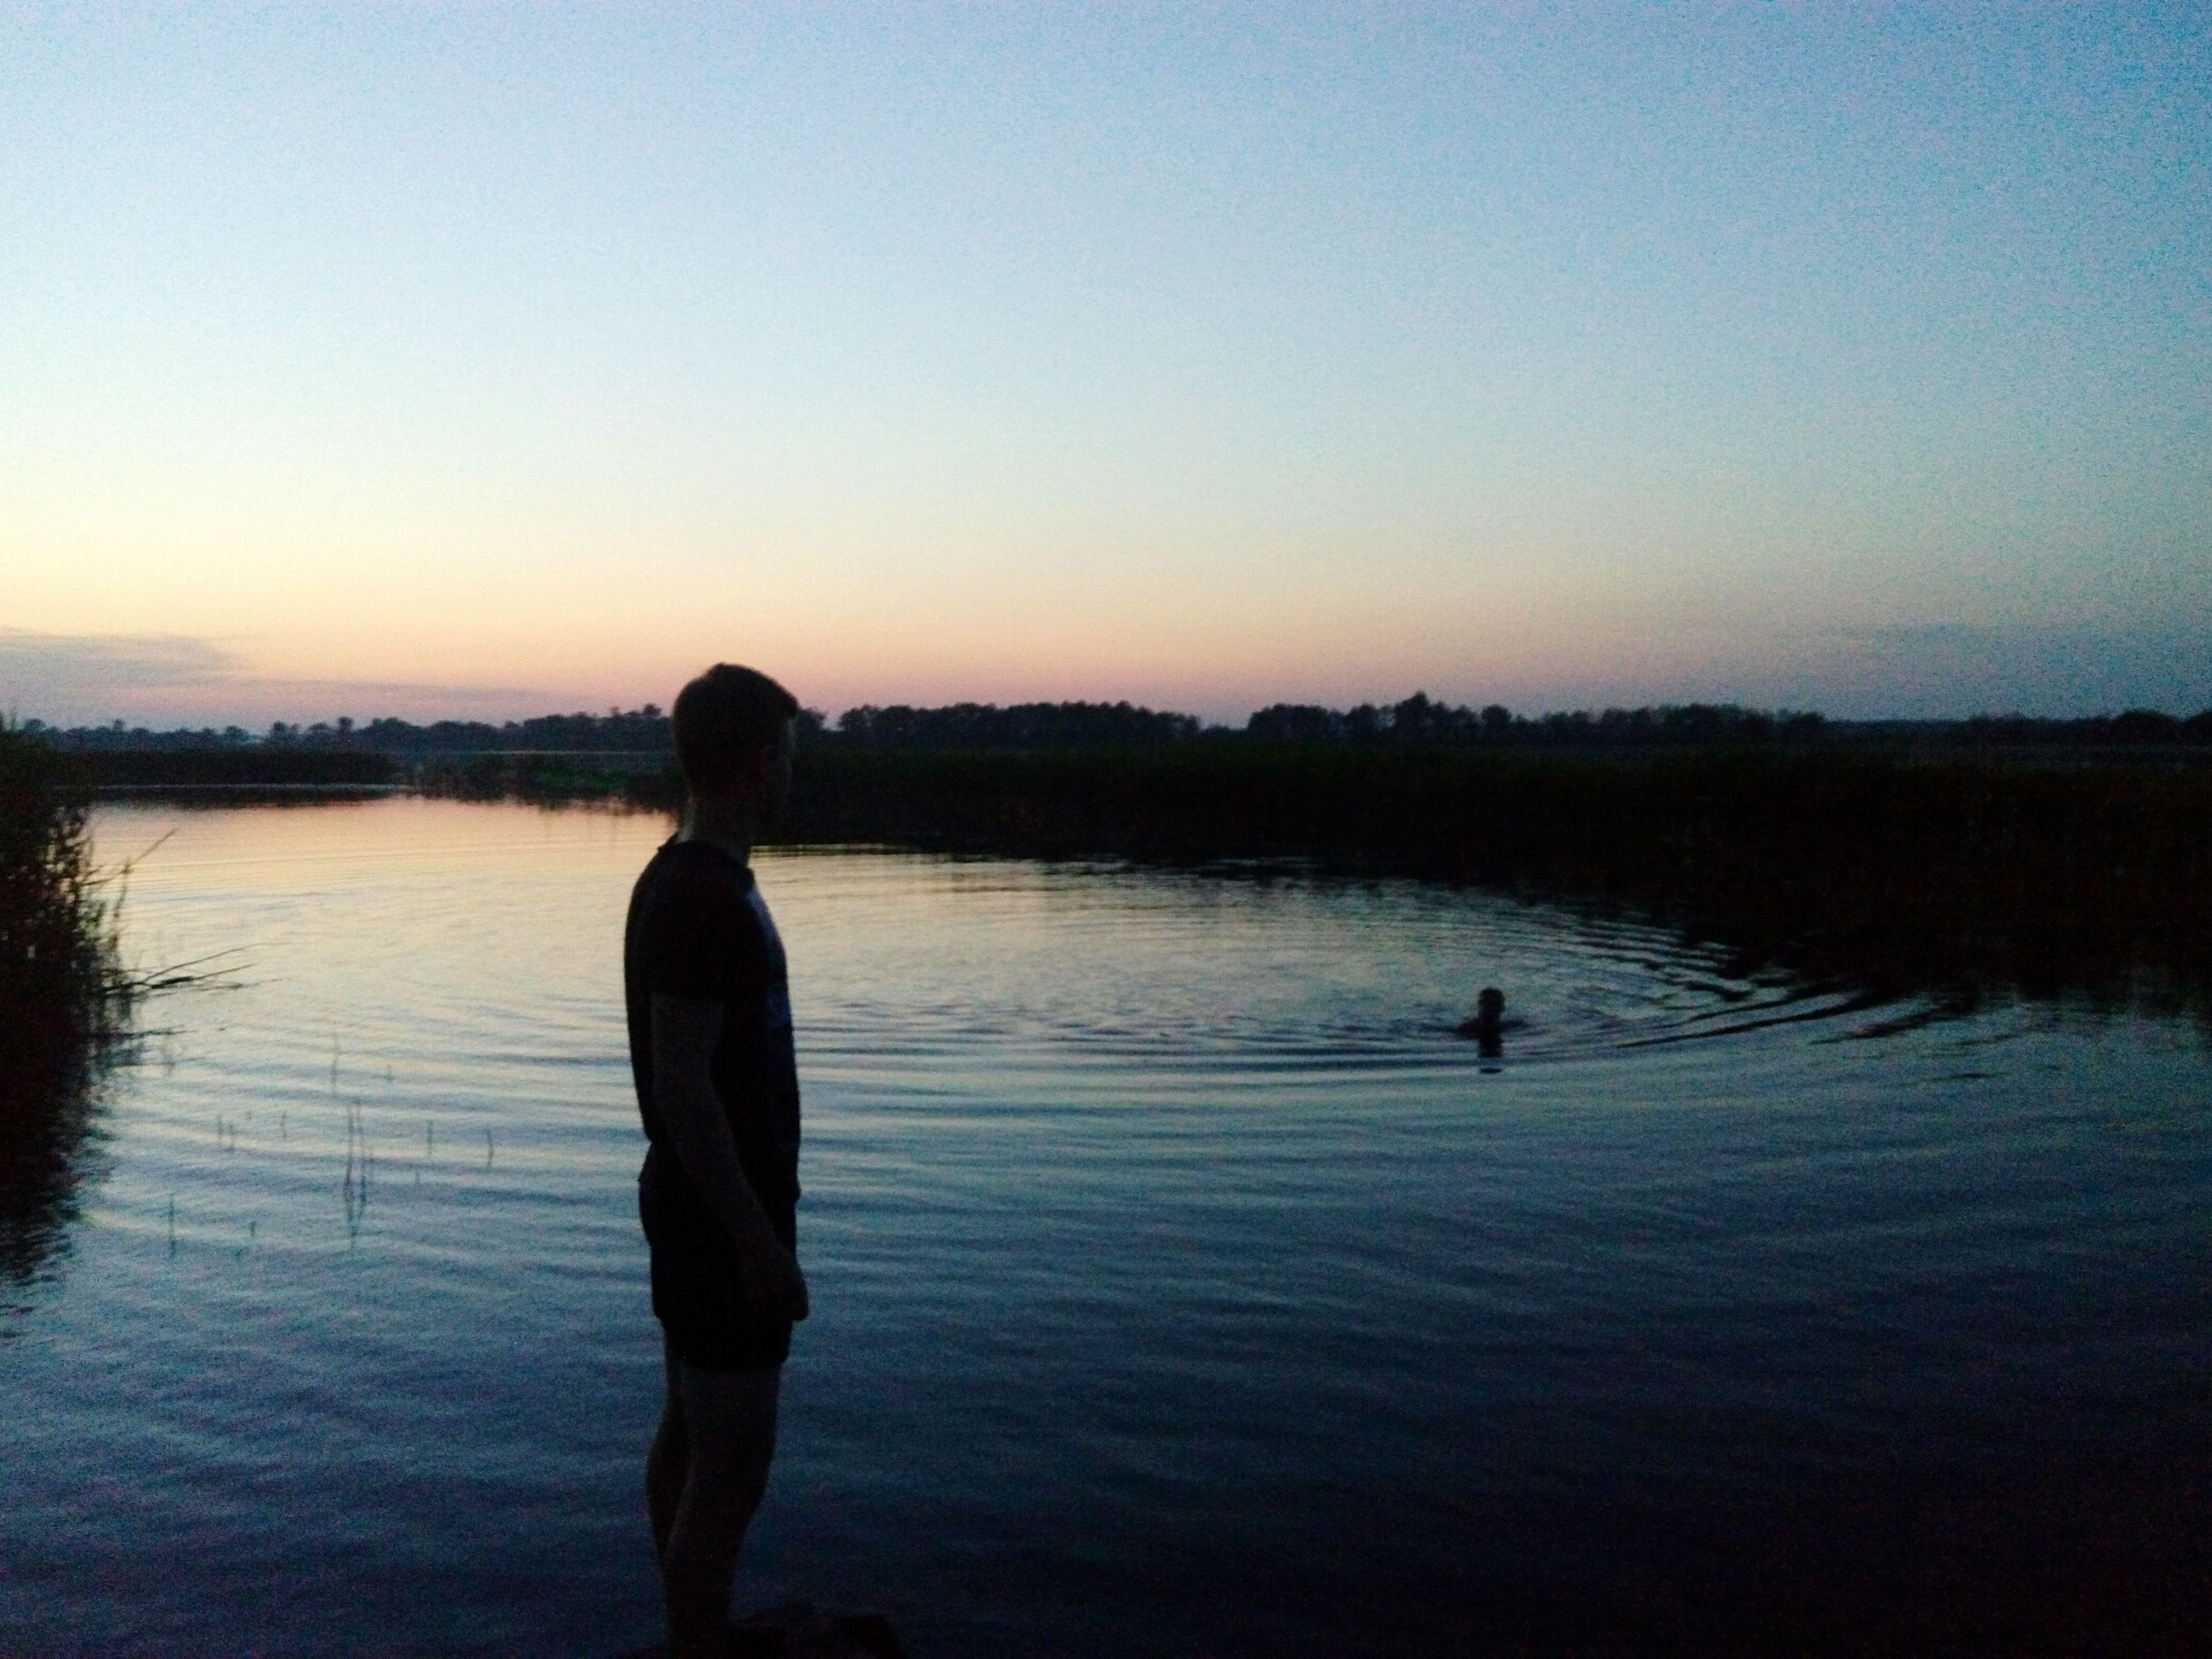 water, silhouette, lake, sunset, clear sky, tranquil scene, tranquility, reflection, scenics, copy space, men, standing, beauty in nature, nature, leisure activity, rear view, lifestyles, fishing